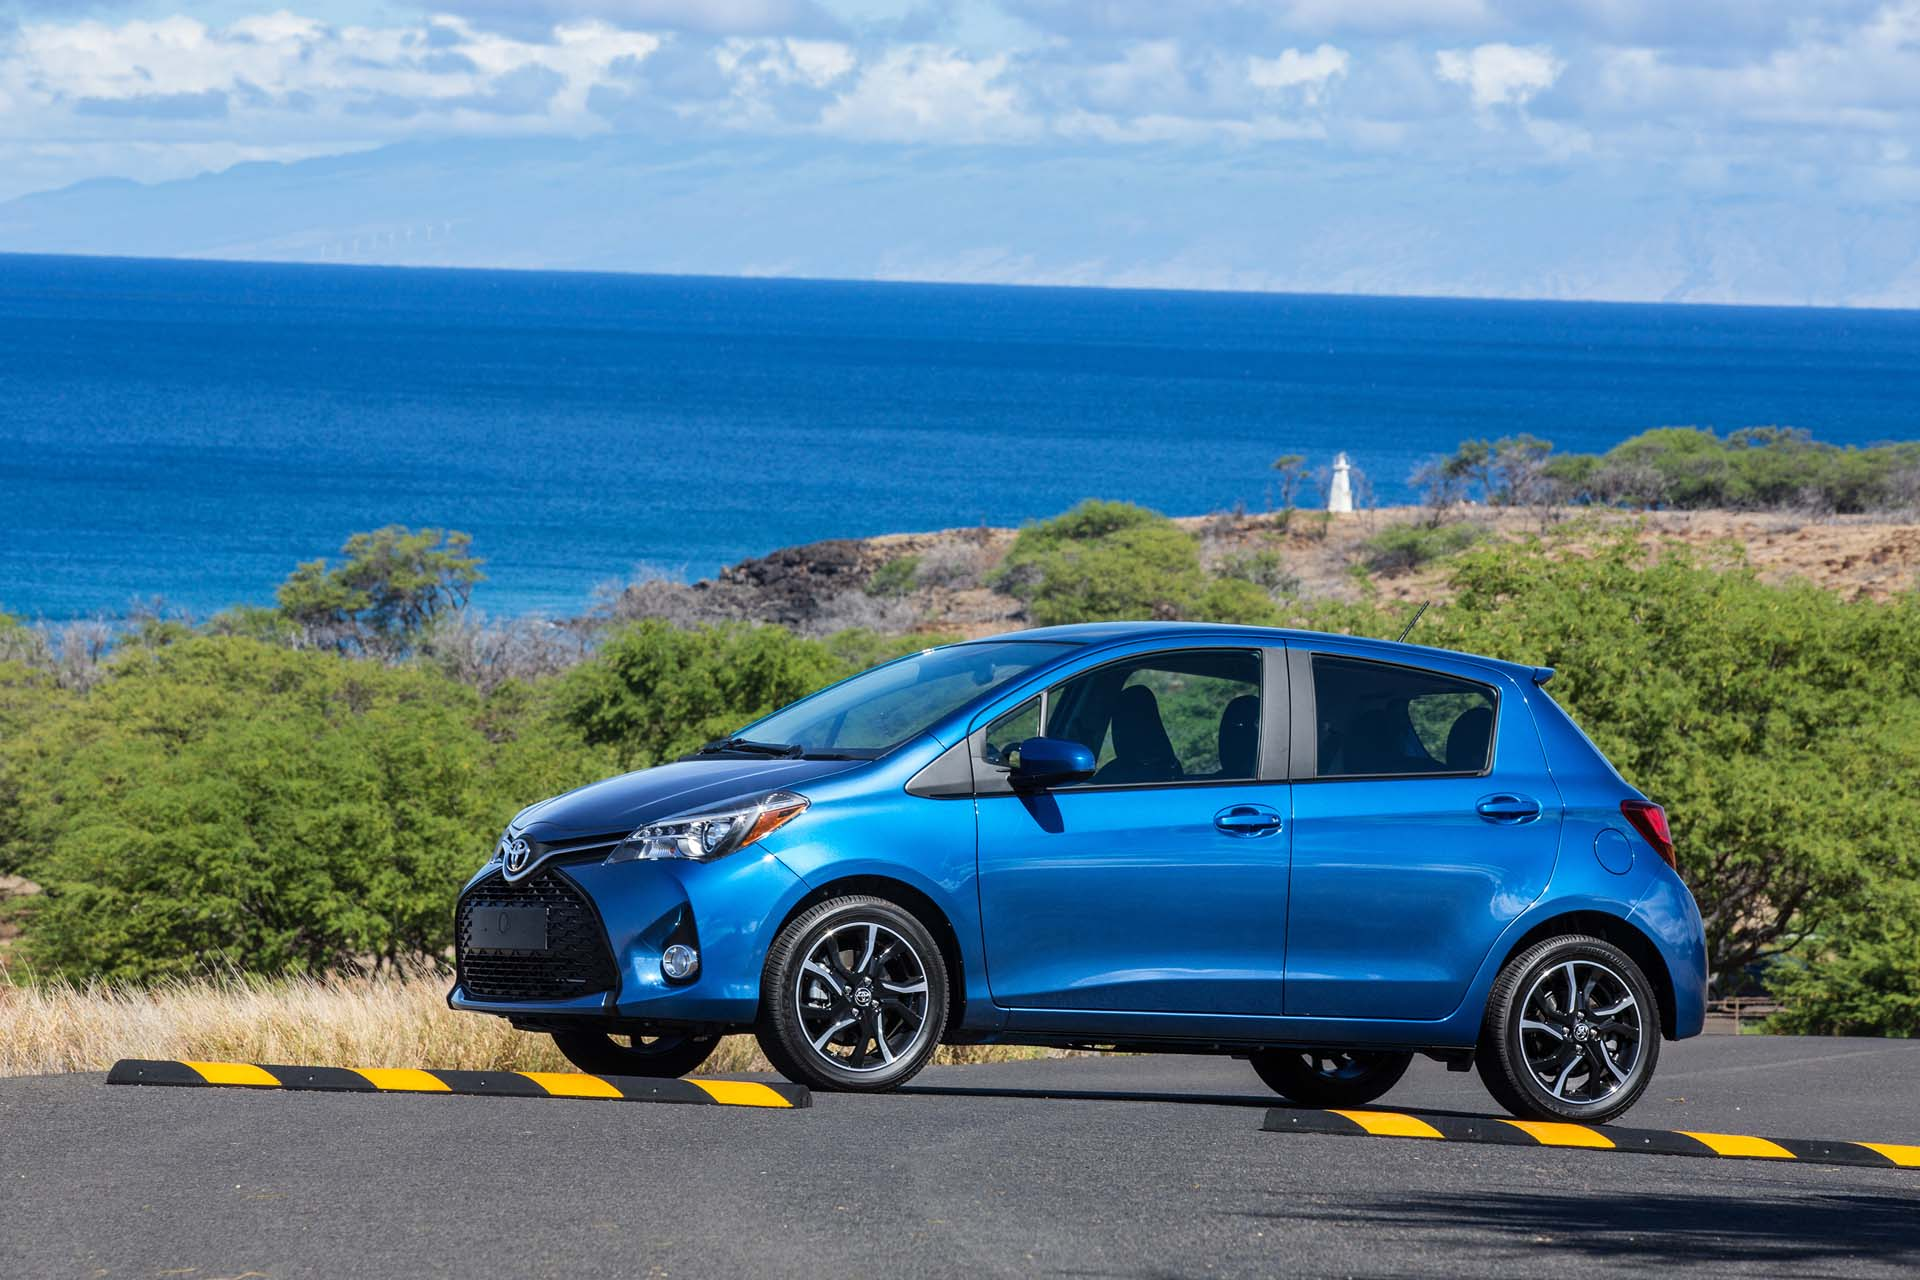 2017 Mitsubishi Mirage Vs Toyota Yaris Compare Cars 2015 Eclipse Efficiency And Velocity Best Auto Insurance